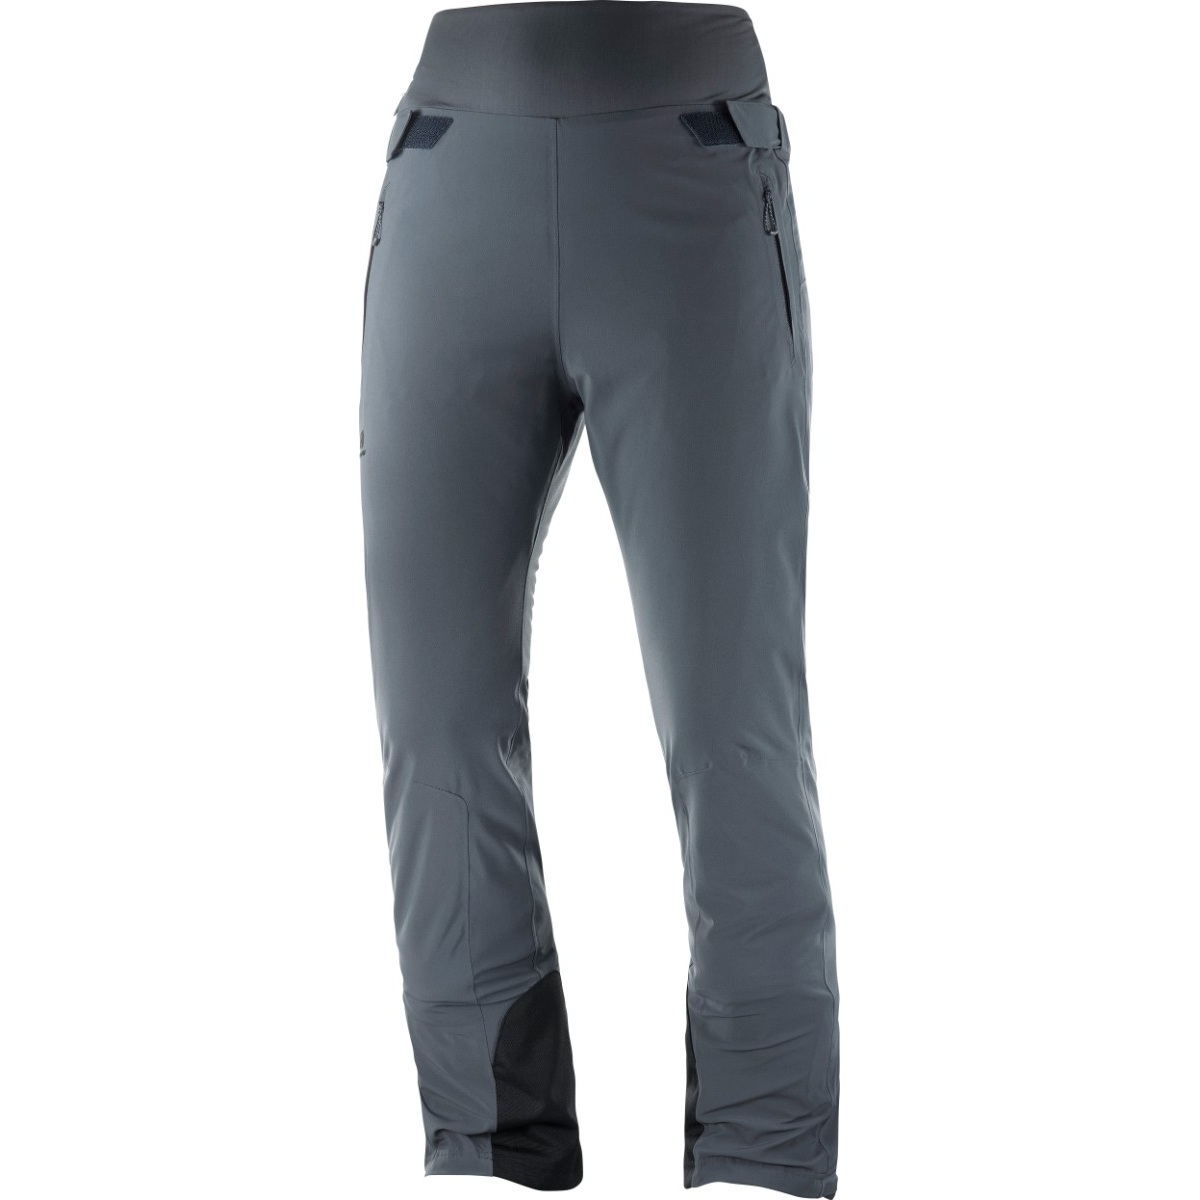 Salomon Pantaloni de ski Salomon ICEFANCY - Gri